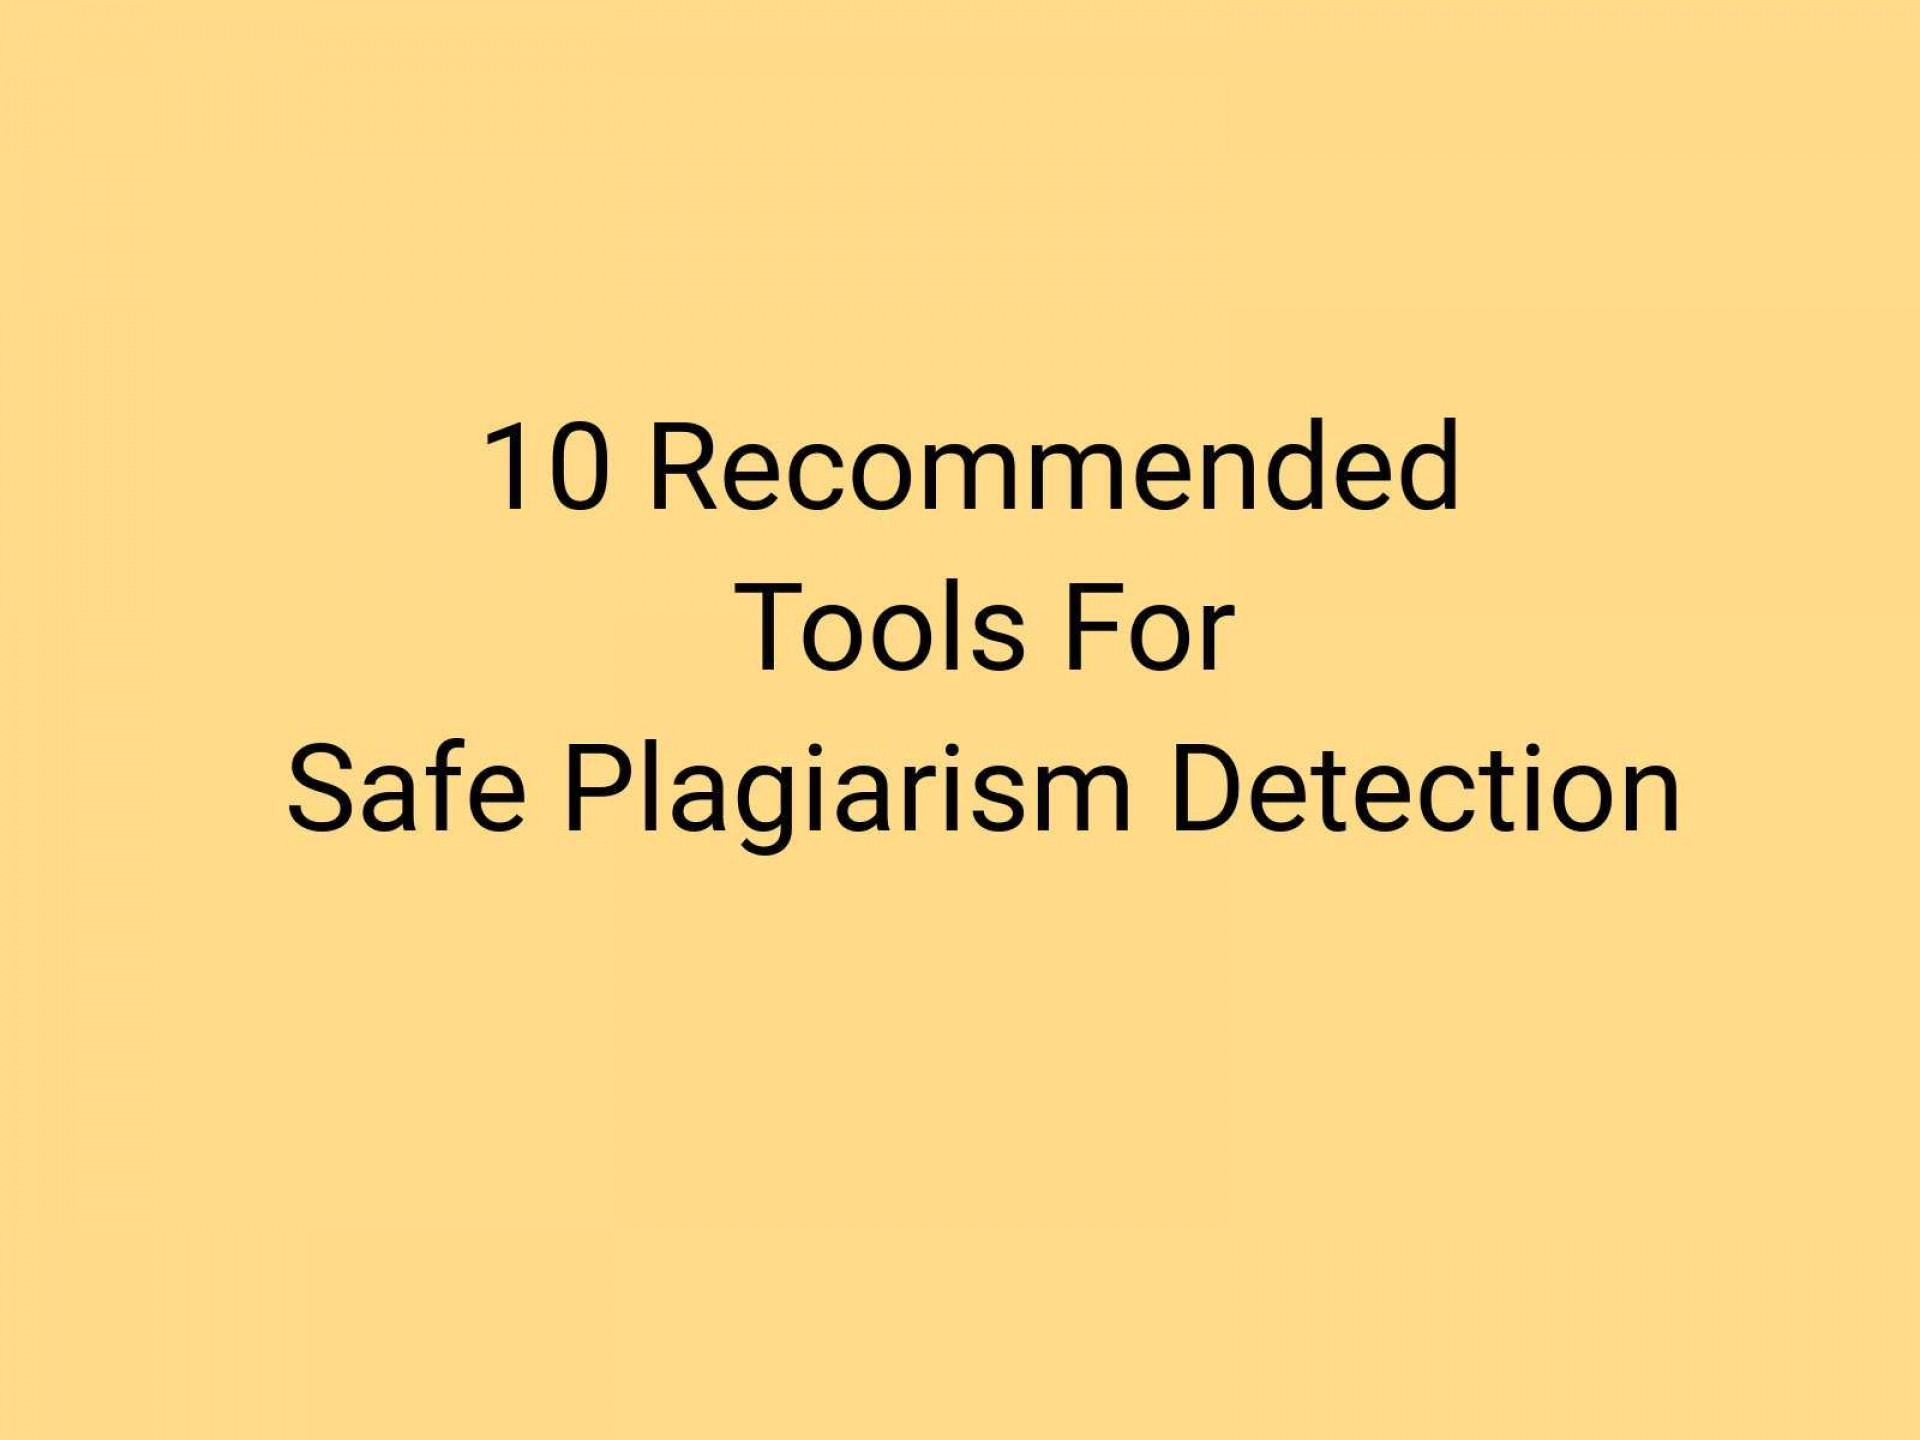 018 Plagiarism Detection Software Research Paper Best Amazing Writing 1920